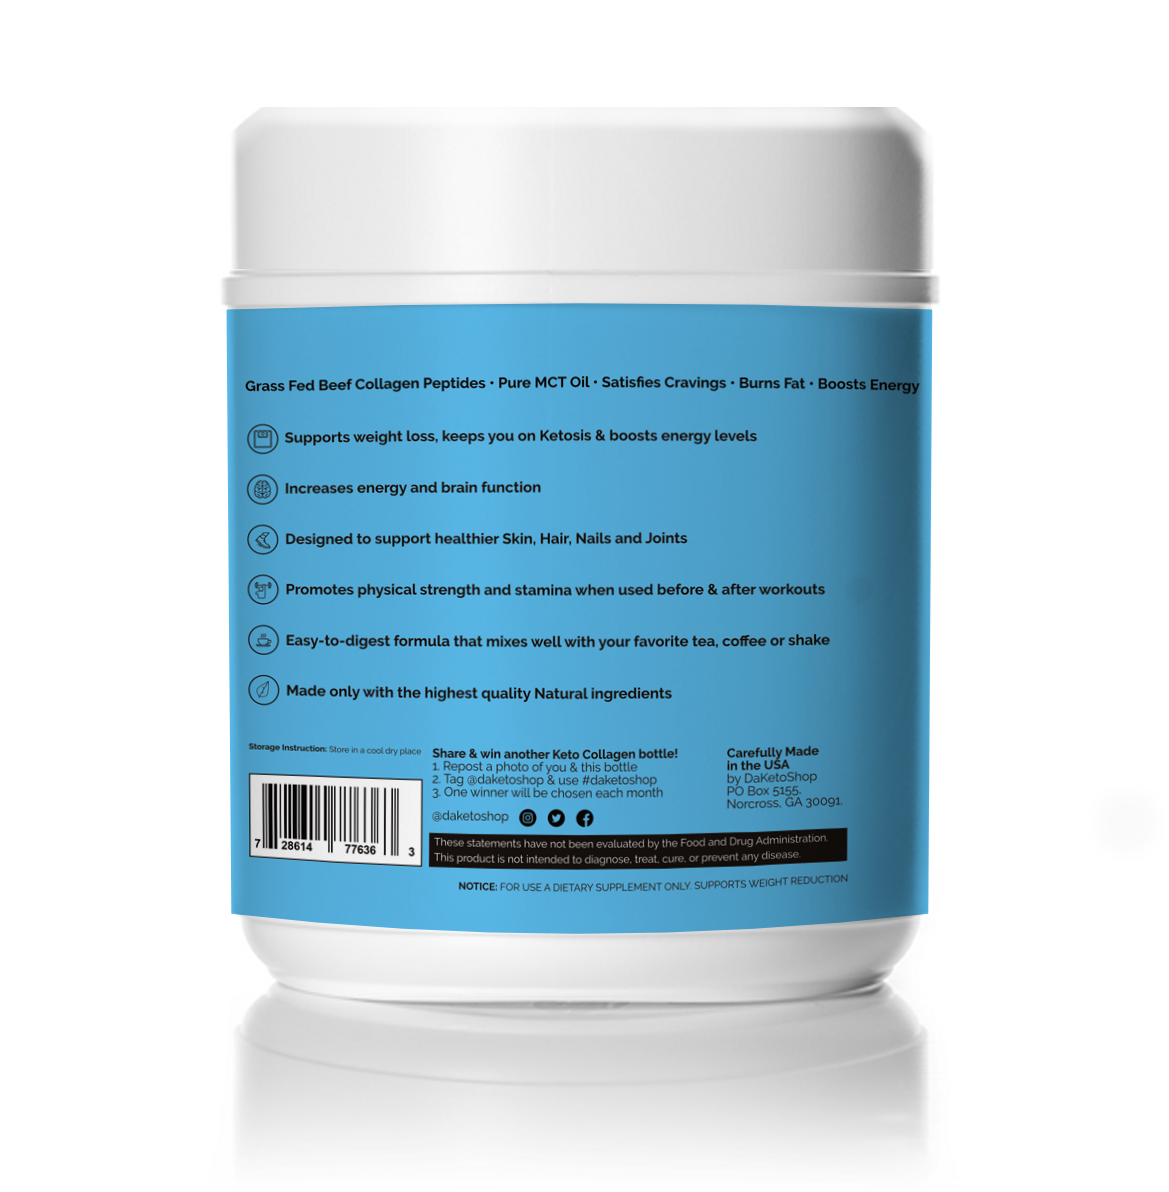 daketoshop keto collagen